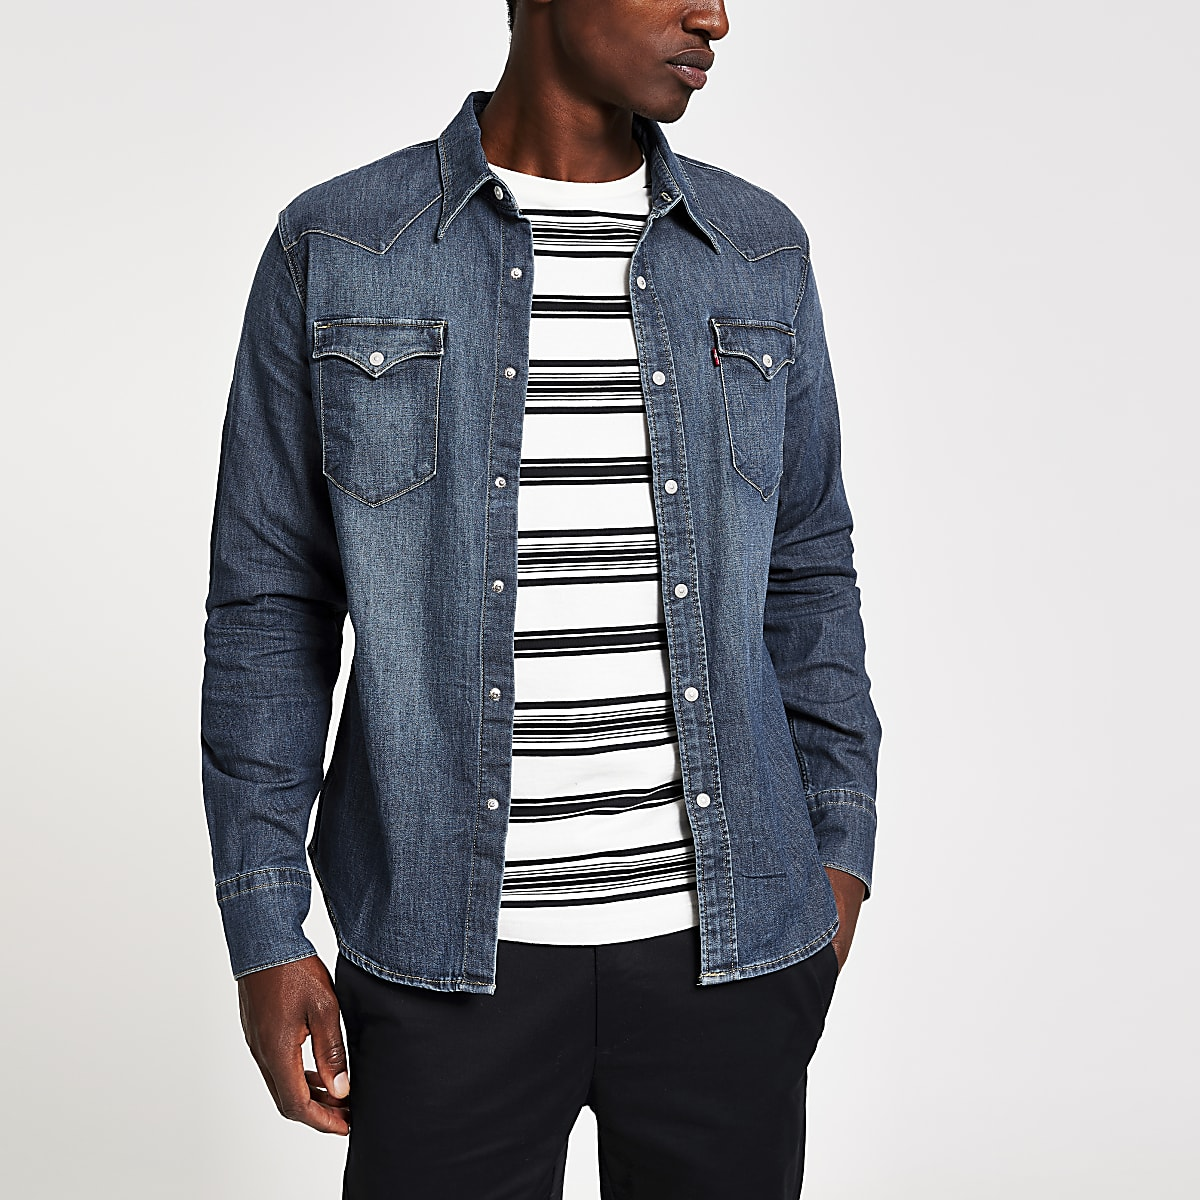 Levi's dark blue long sleeve denim shirt